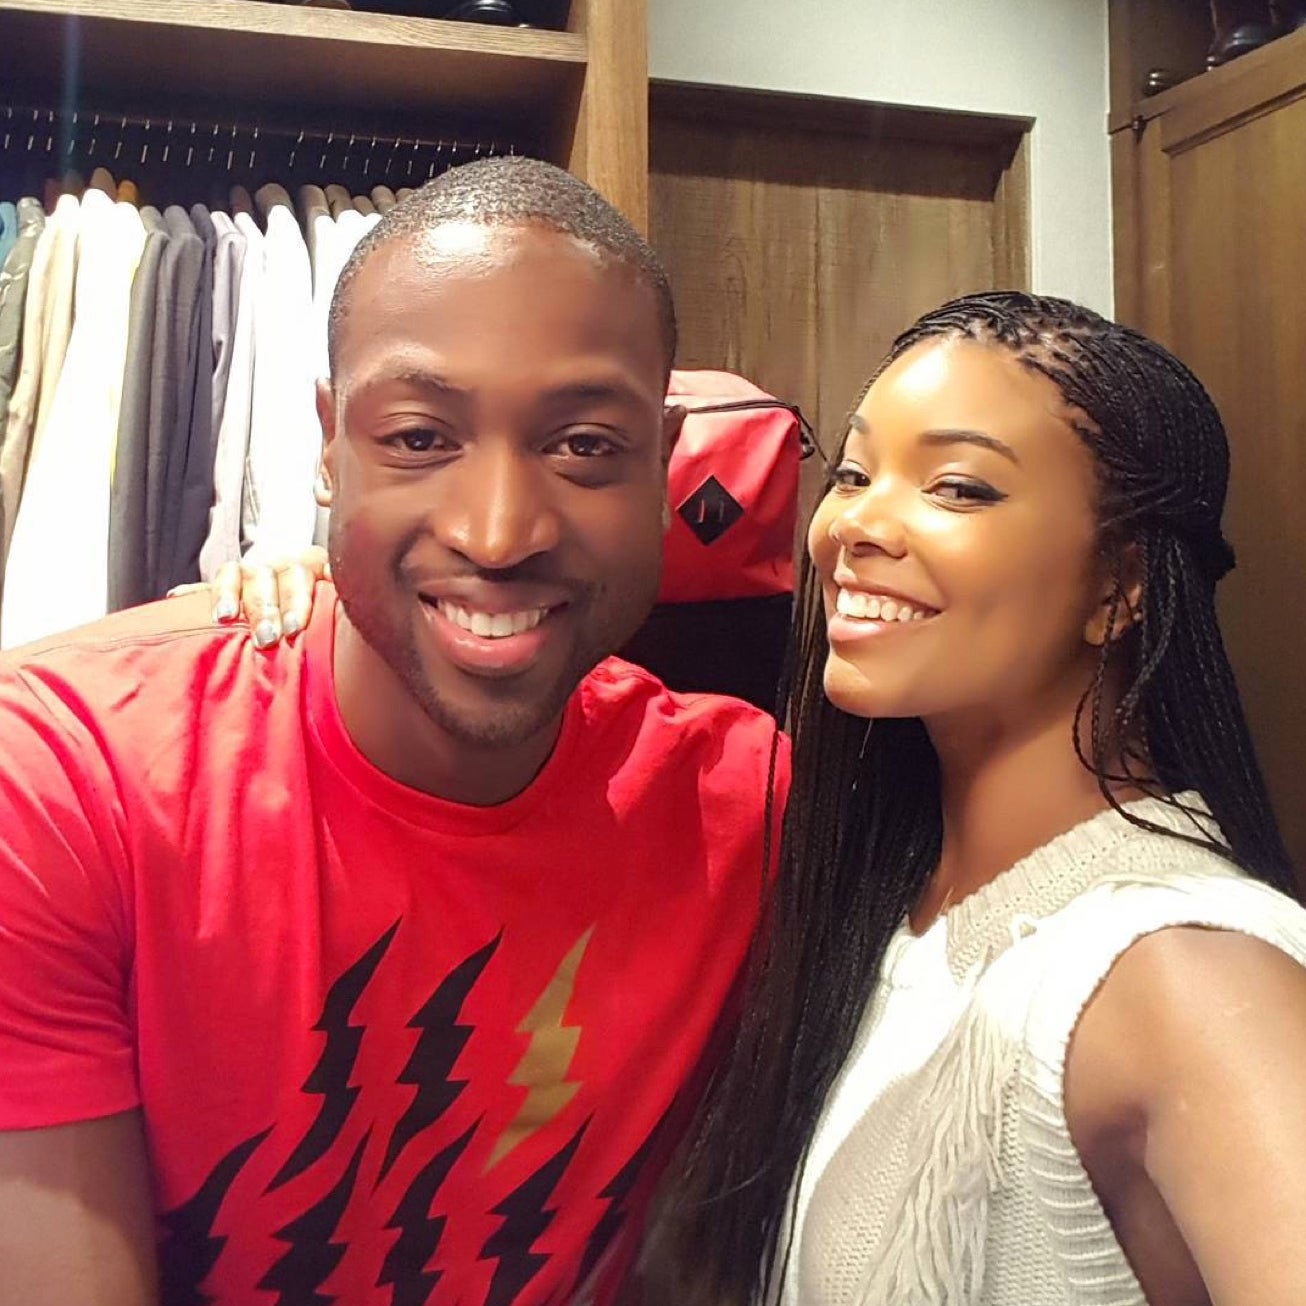 Gabrielle Union and Dwayne Wade's Cutest Instagram Moments ...